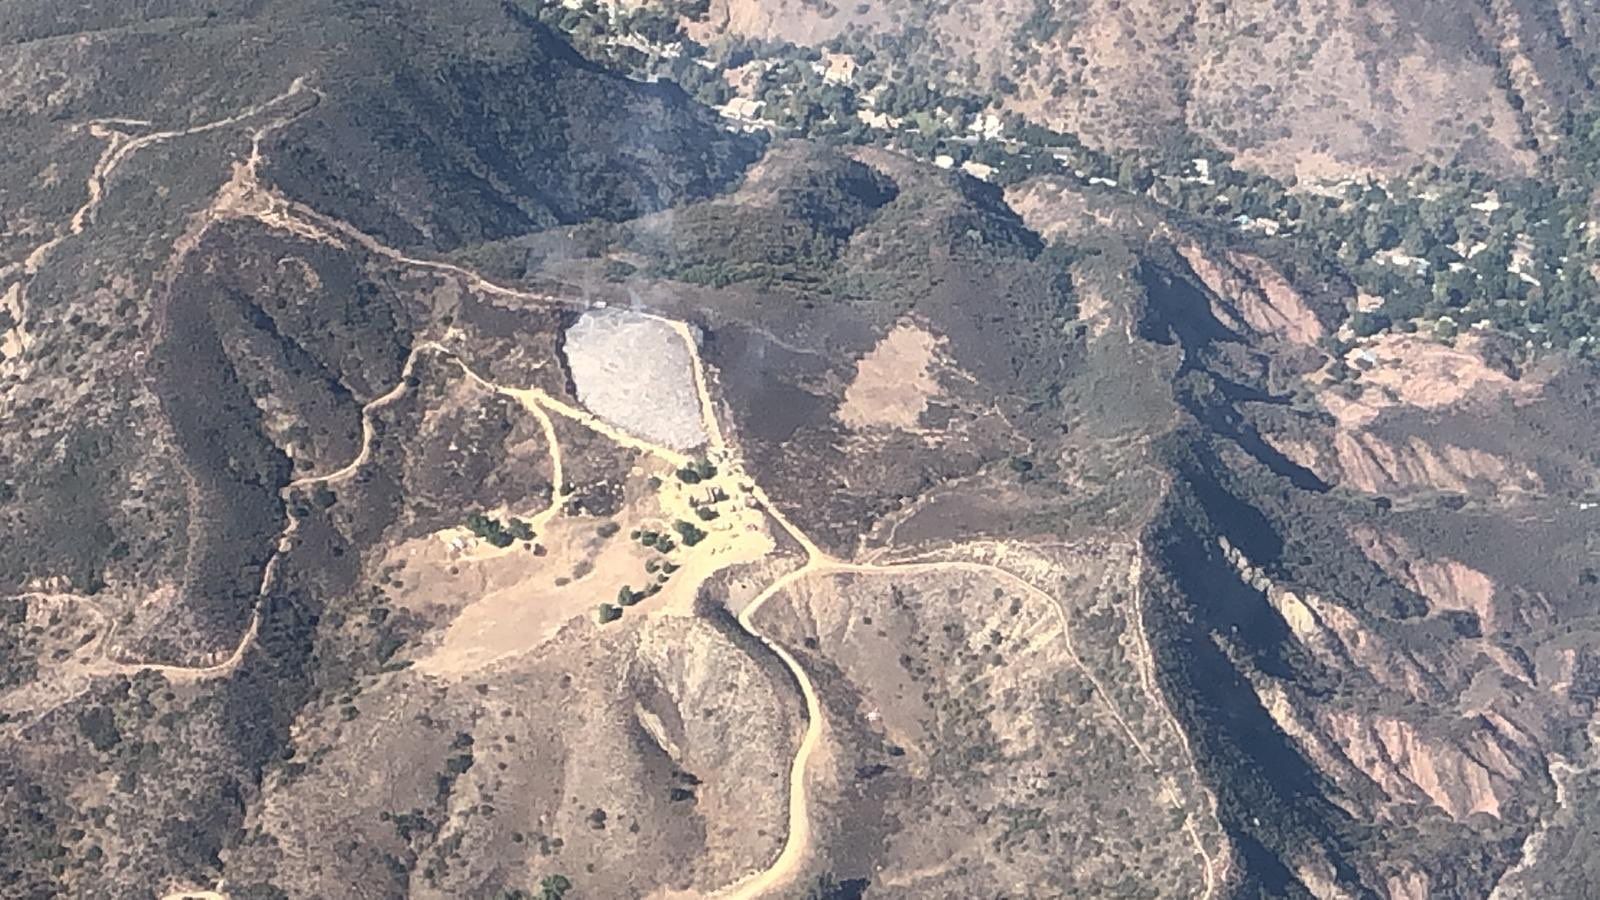 An aerial photo of the Williams Fire released by the Orange County Fire Authority on Nov. 3, 2019.